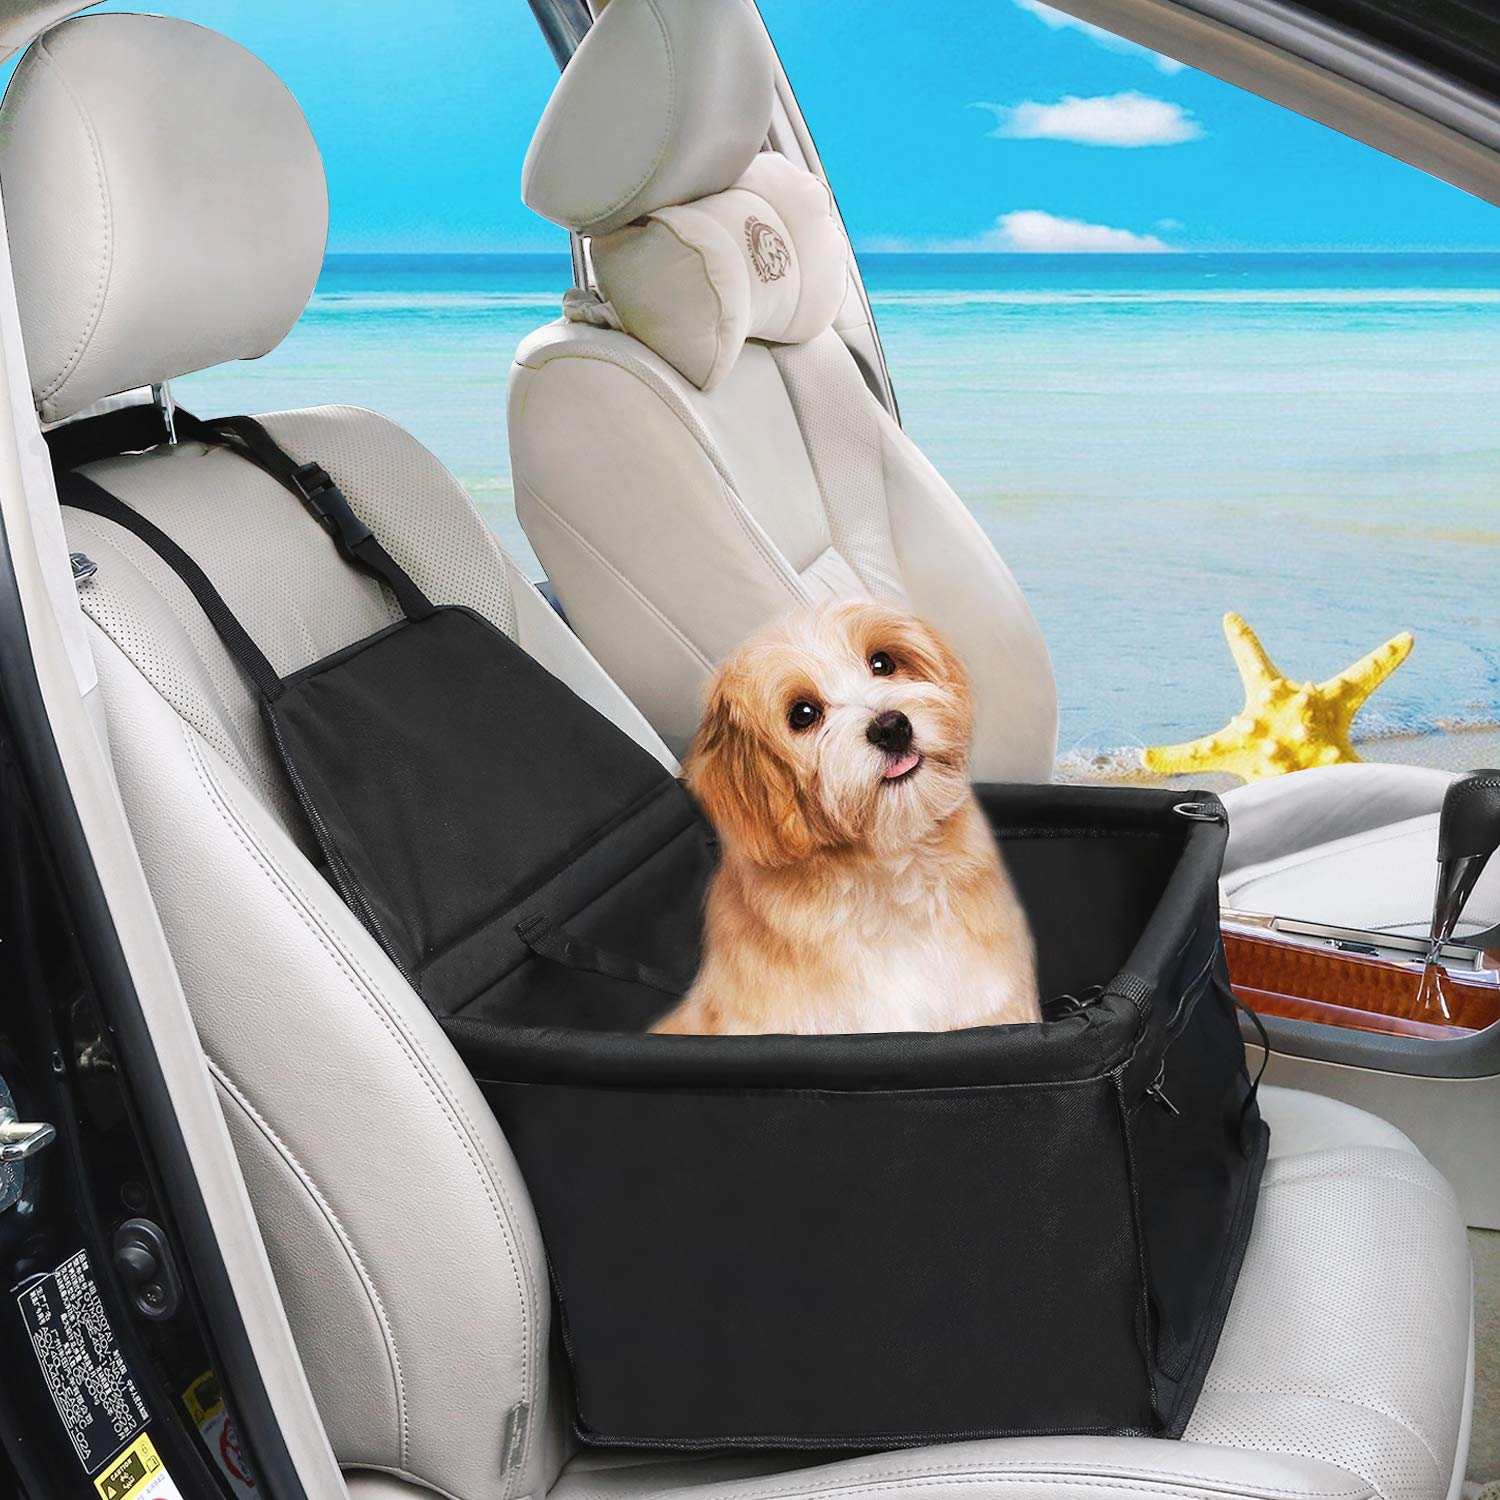 XianghuangTechnology Pet Car Booster Seat for Dog Cat Portable and Breathable Bag with Seat Belt Dog Carrier Safety Stable for Travel Gray Bone with Safety Leash and Zipper Storage Pocket